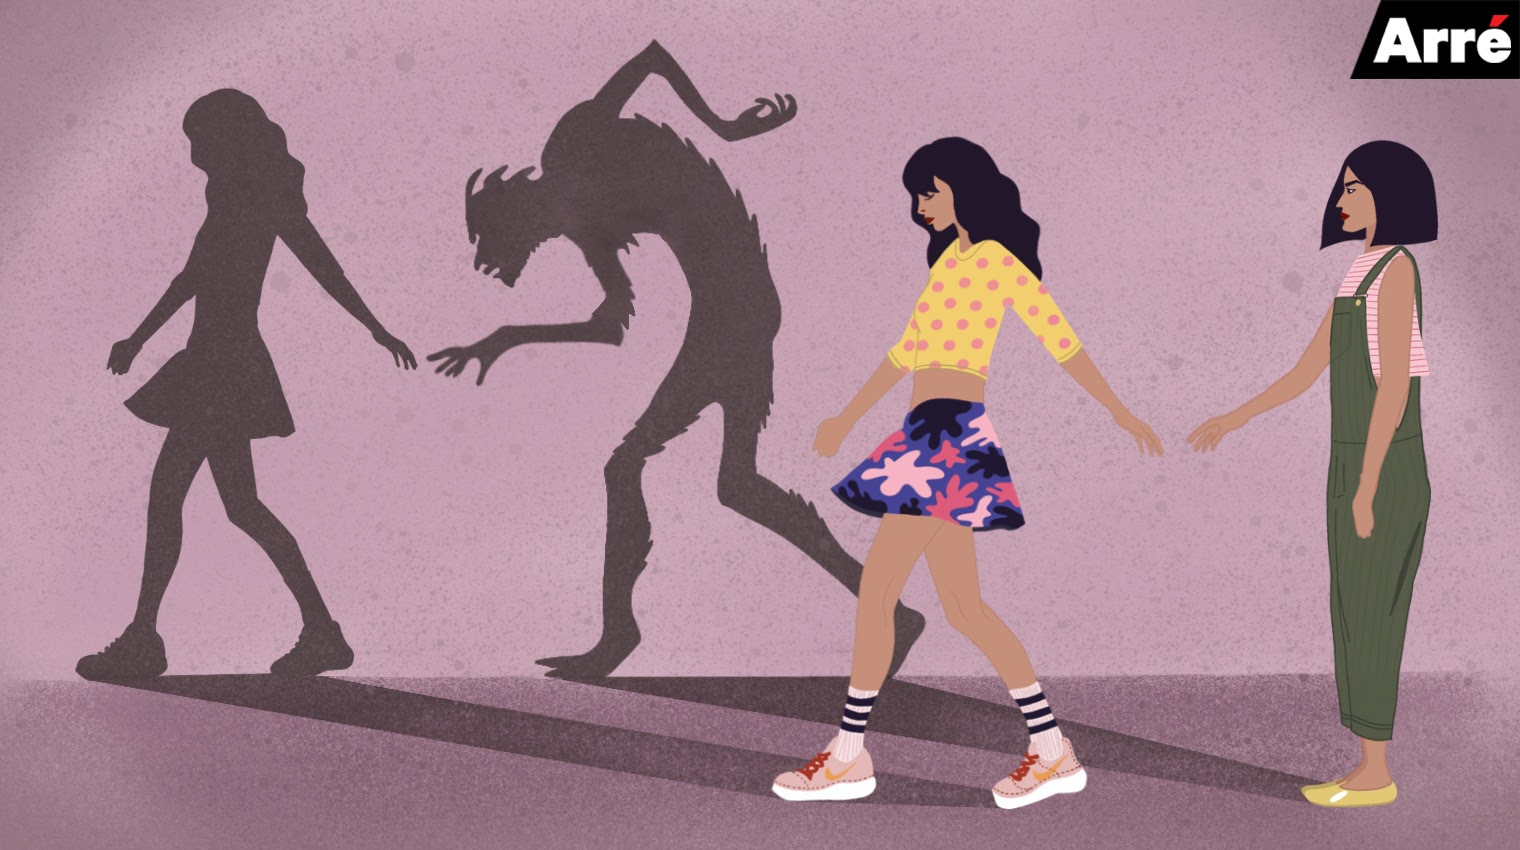 A graphic showing what appears to be two friends walking side by side. Their shadows show that one friend is actually a monster.